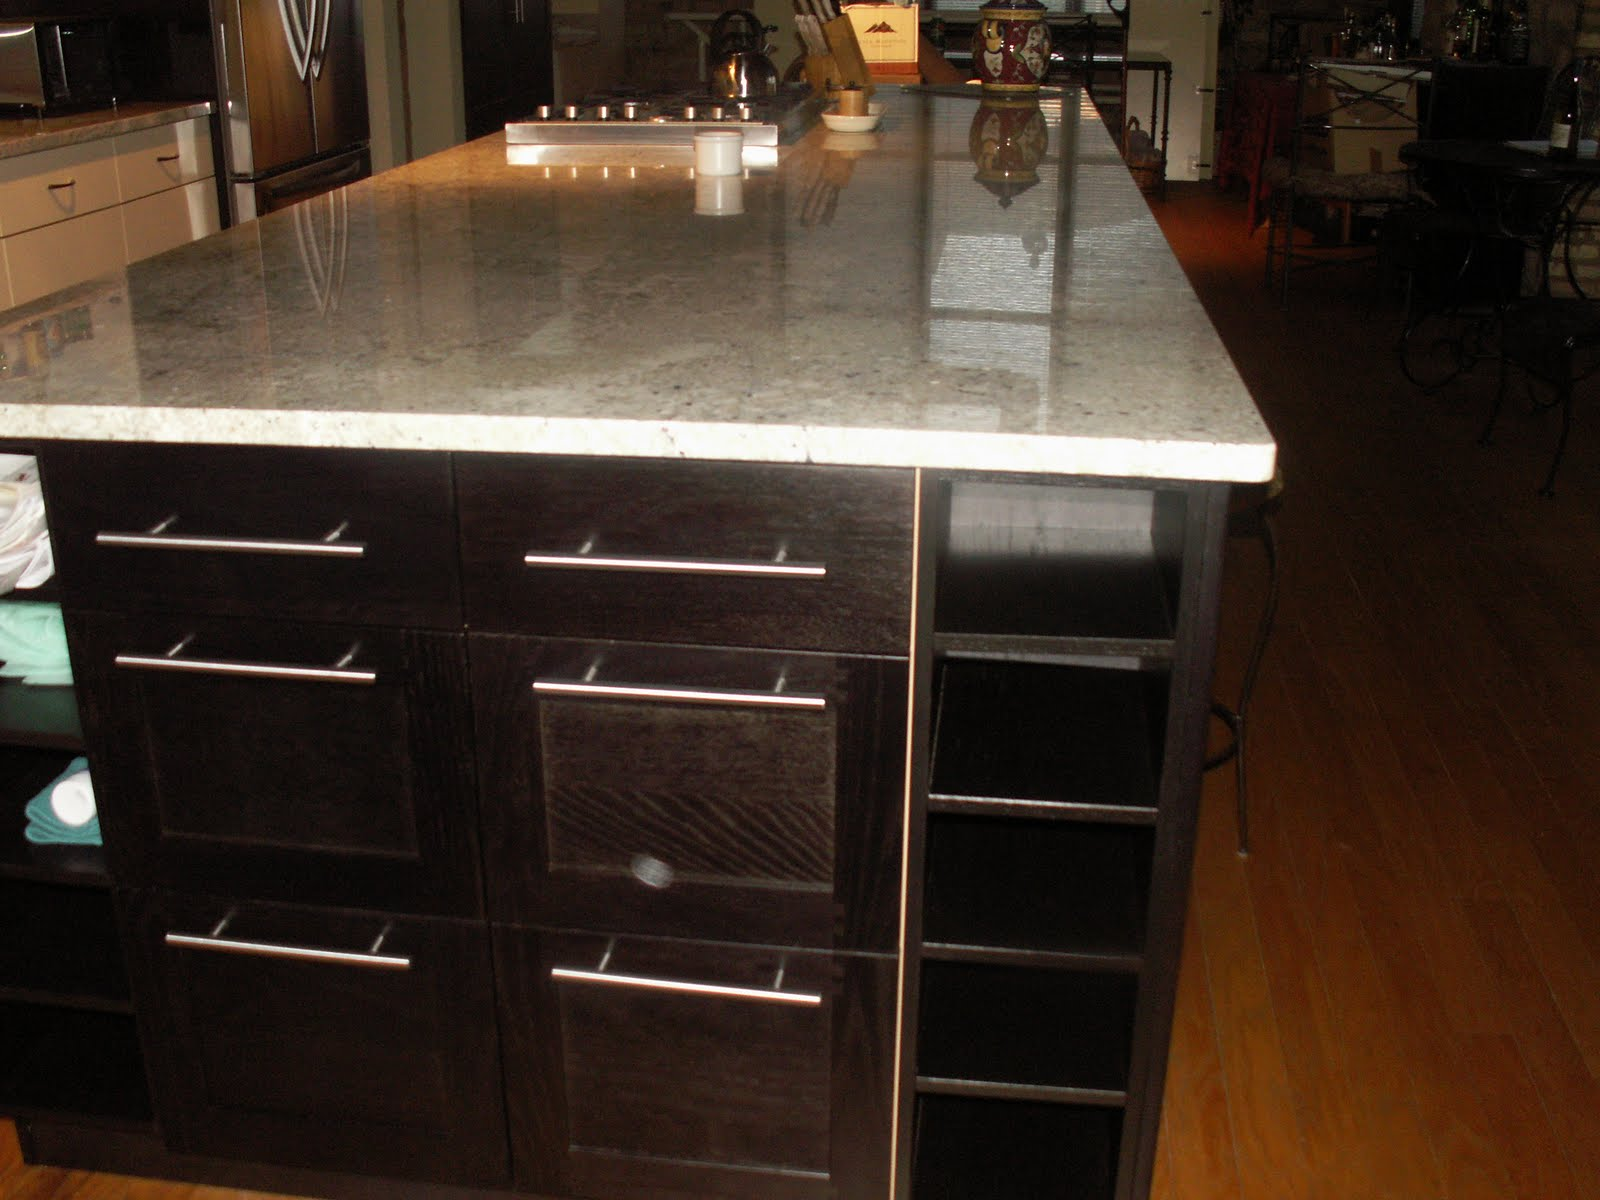 Bianco Romano Granite Kitchen Jc Granite Bianco Romano Kitchen With A Large Island